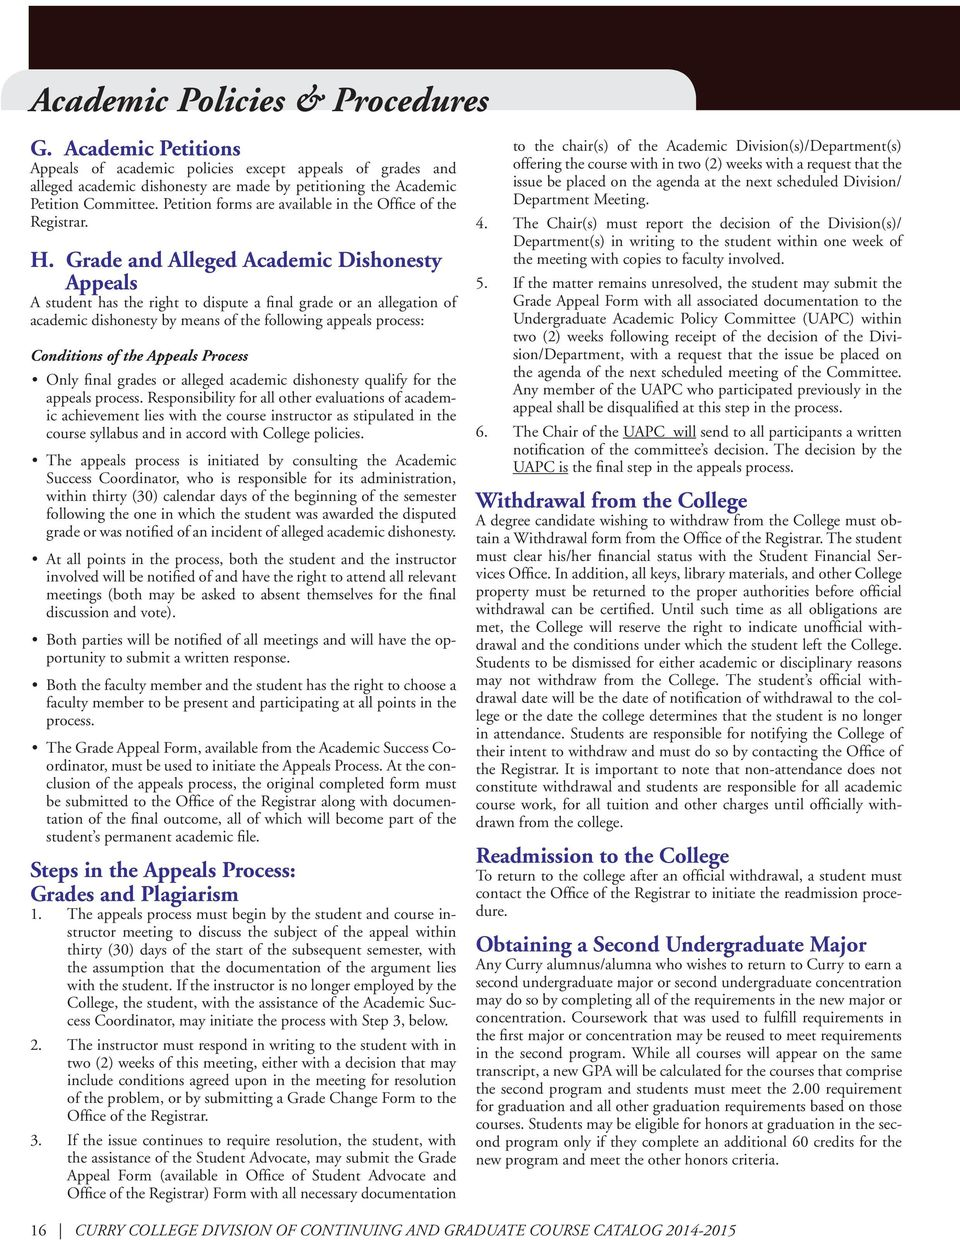 Grade and Alleged Academic Dishonesty Appeals A student has the right to dispute a final grade or an allegation of academic dishonesty by means of the following appeals process: Conditions of the